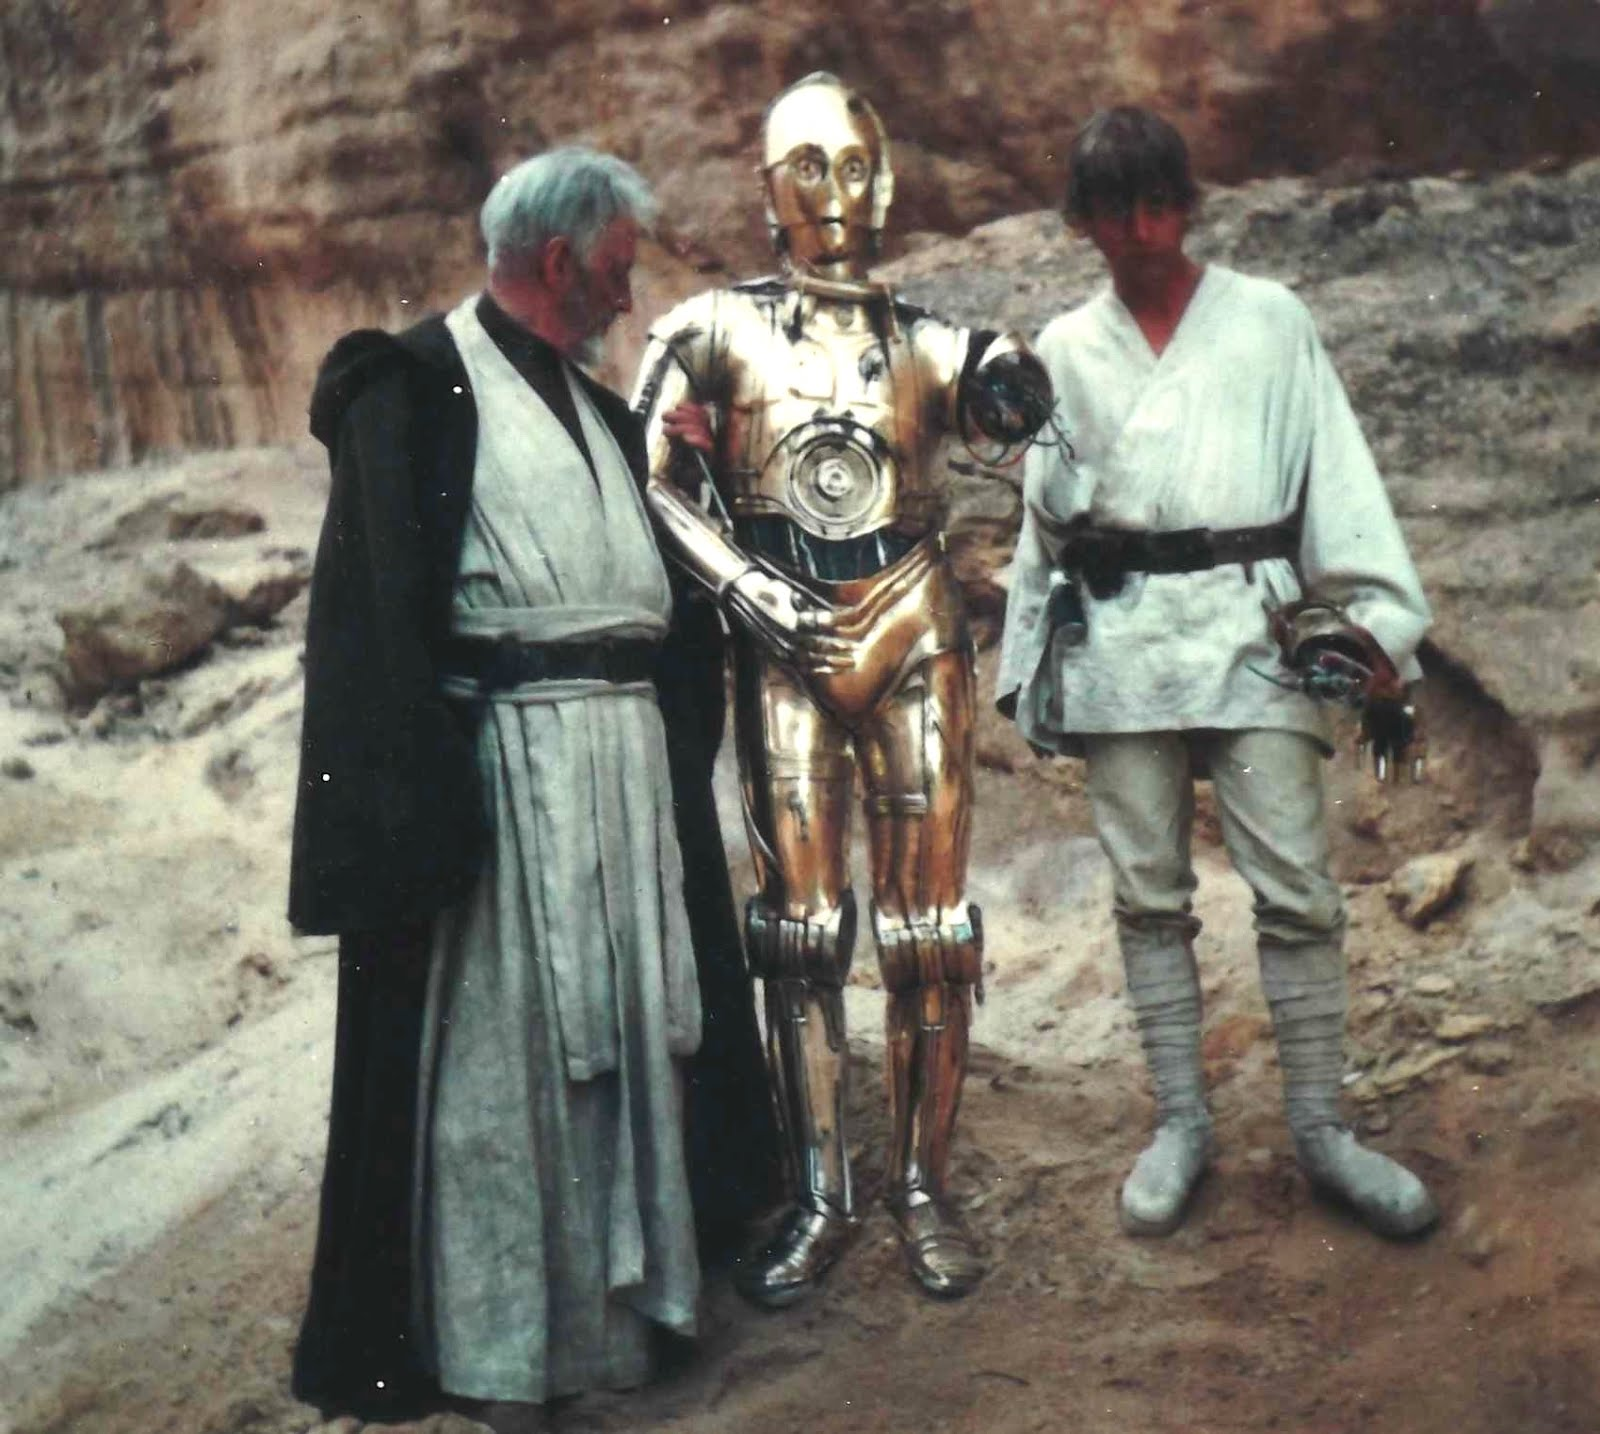 BEHIND THE SCENES OF 'STAR WARS' (1977)